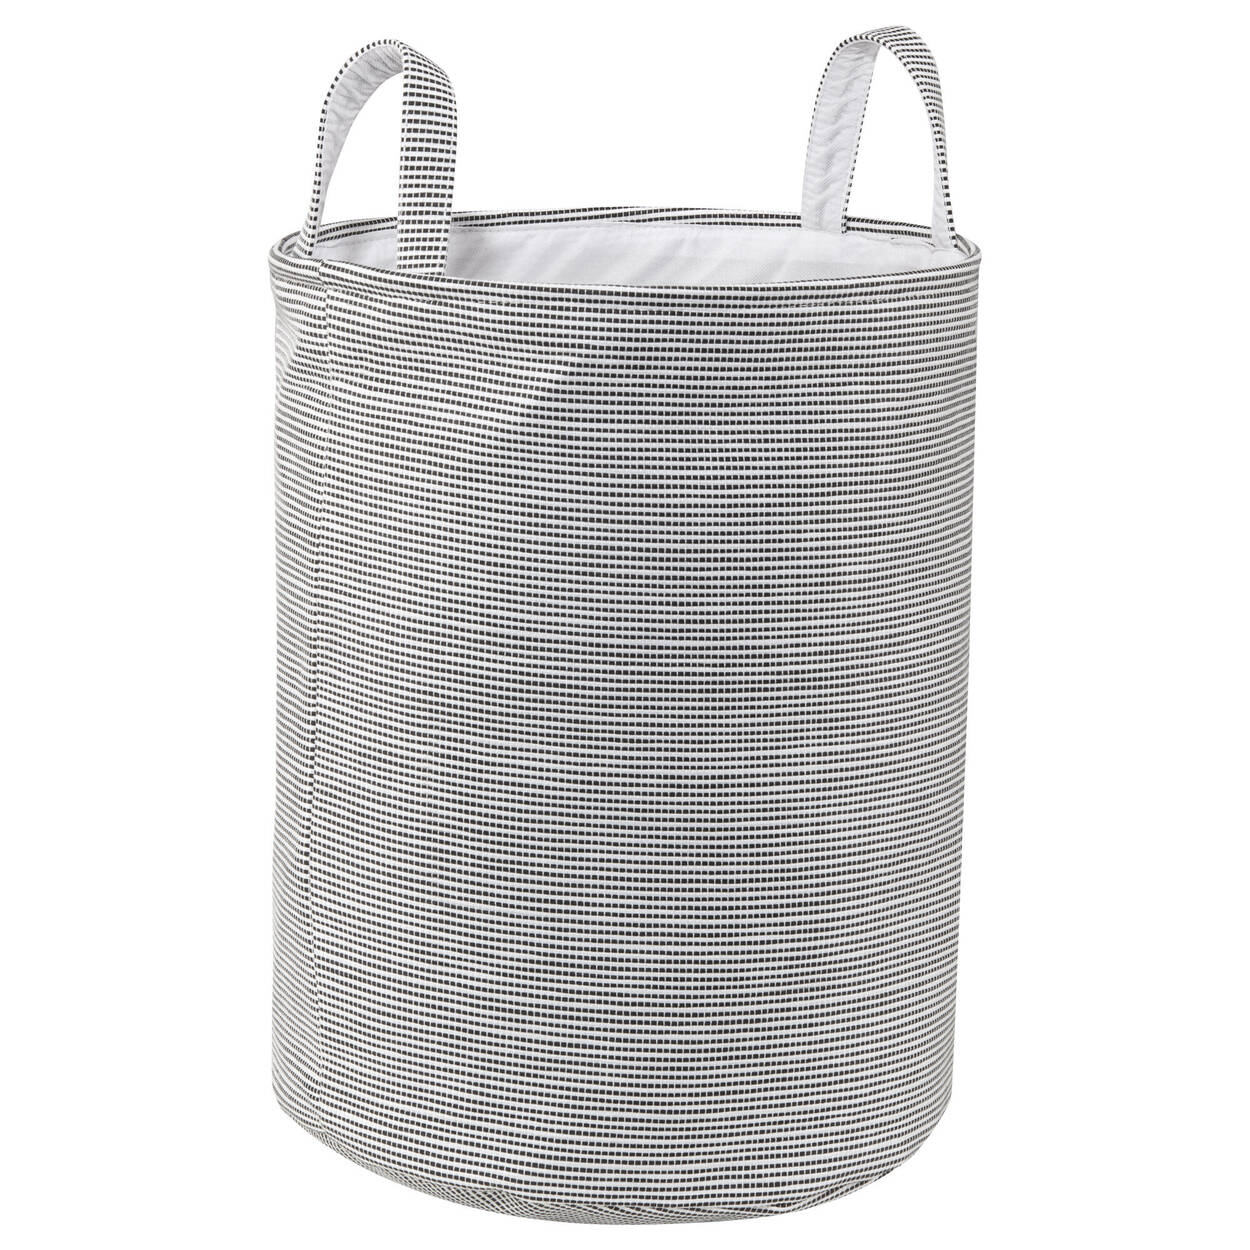 Striped Hamper with Handles